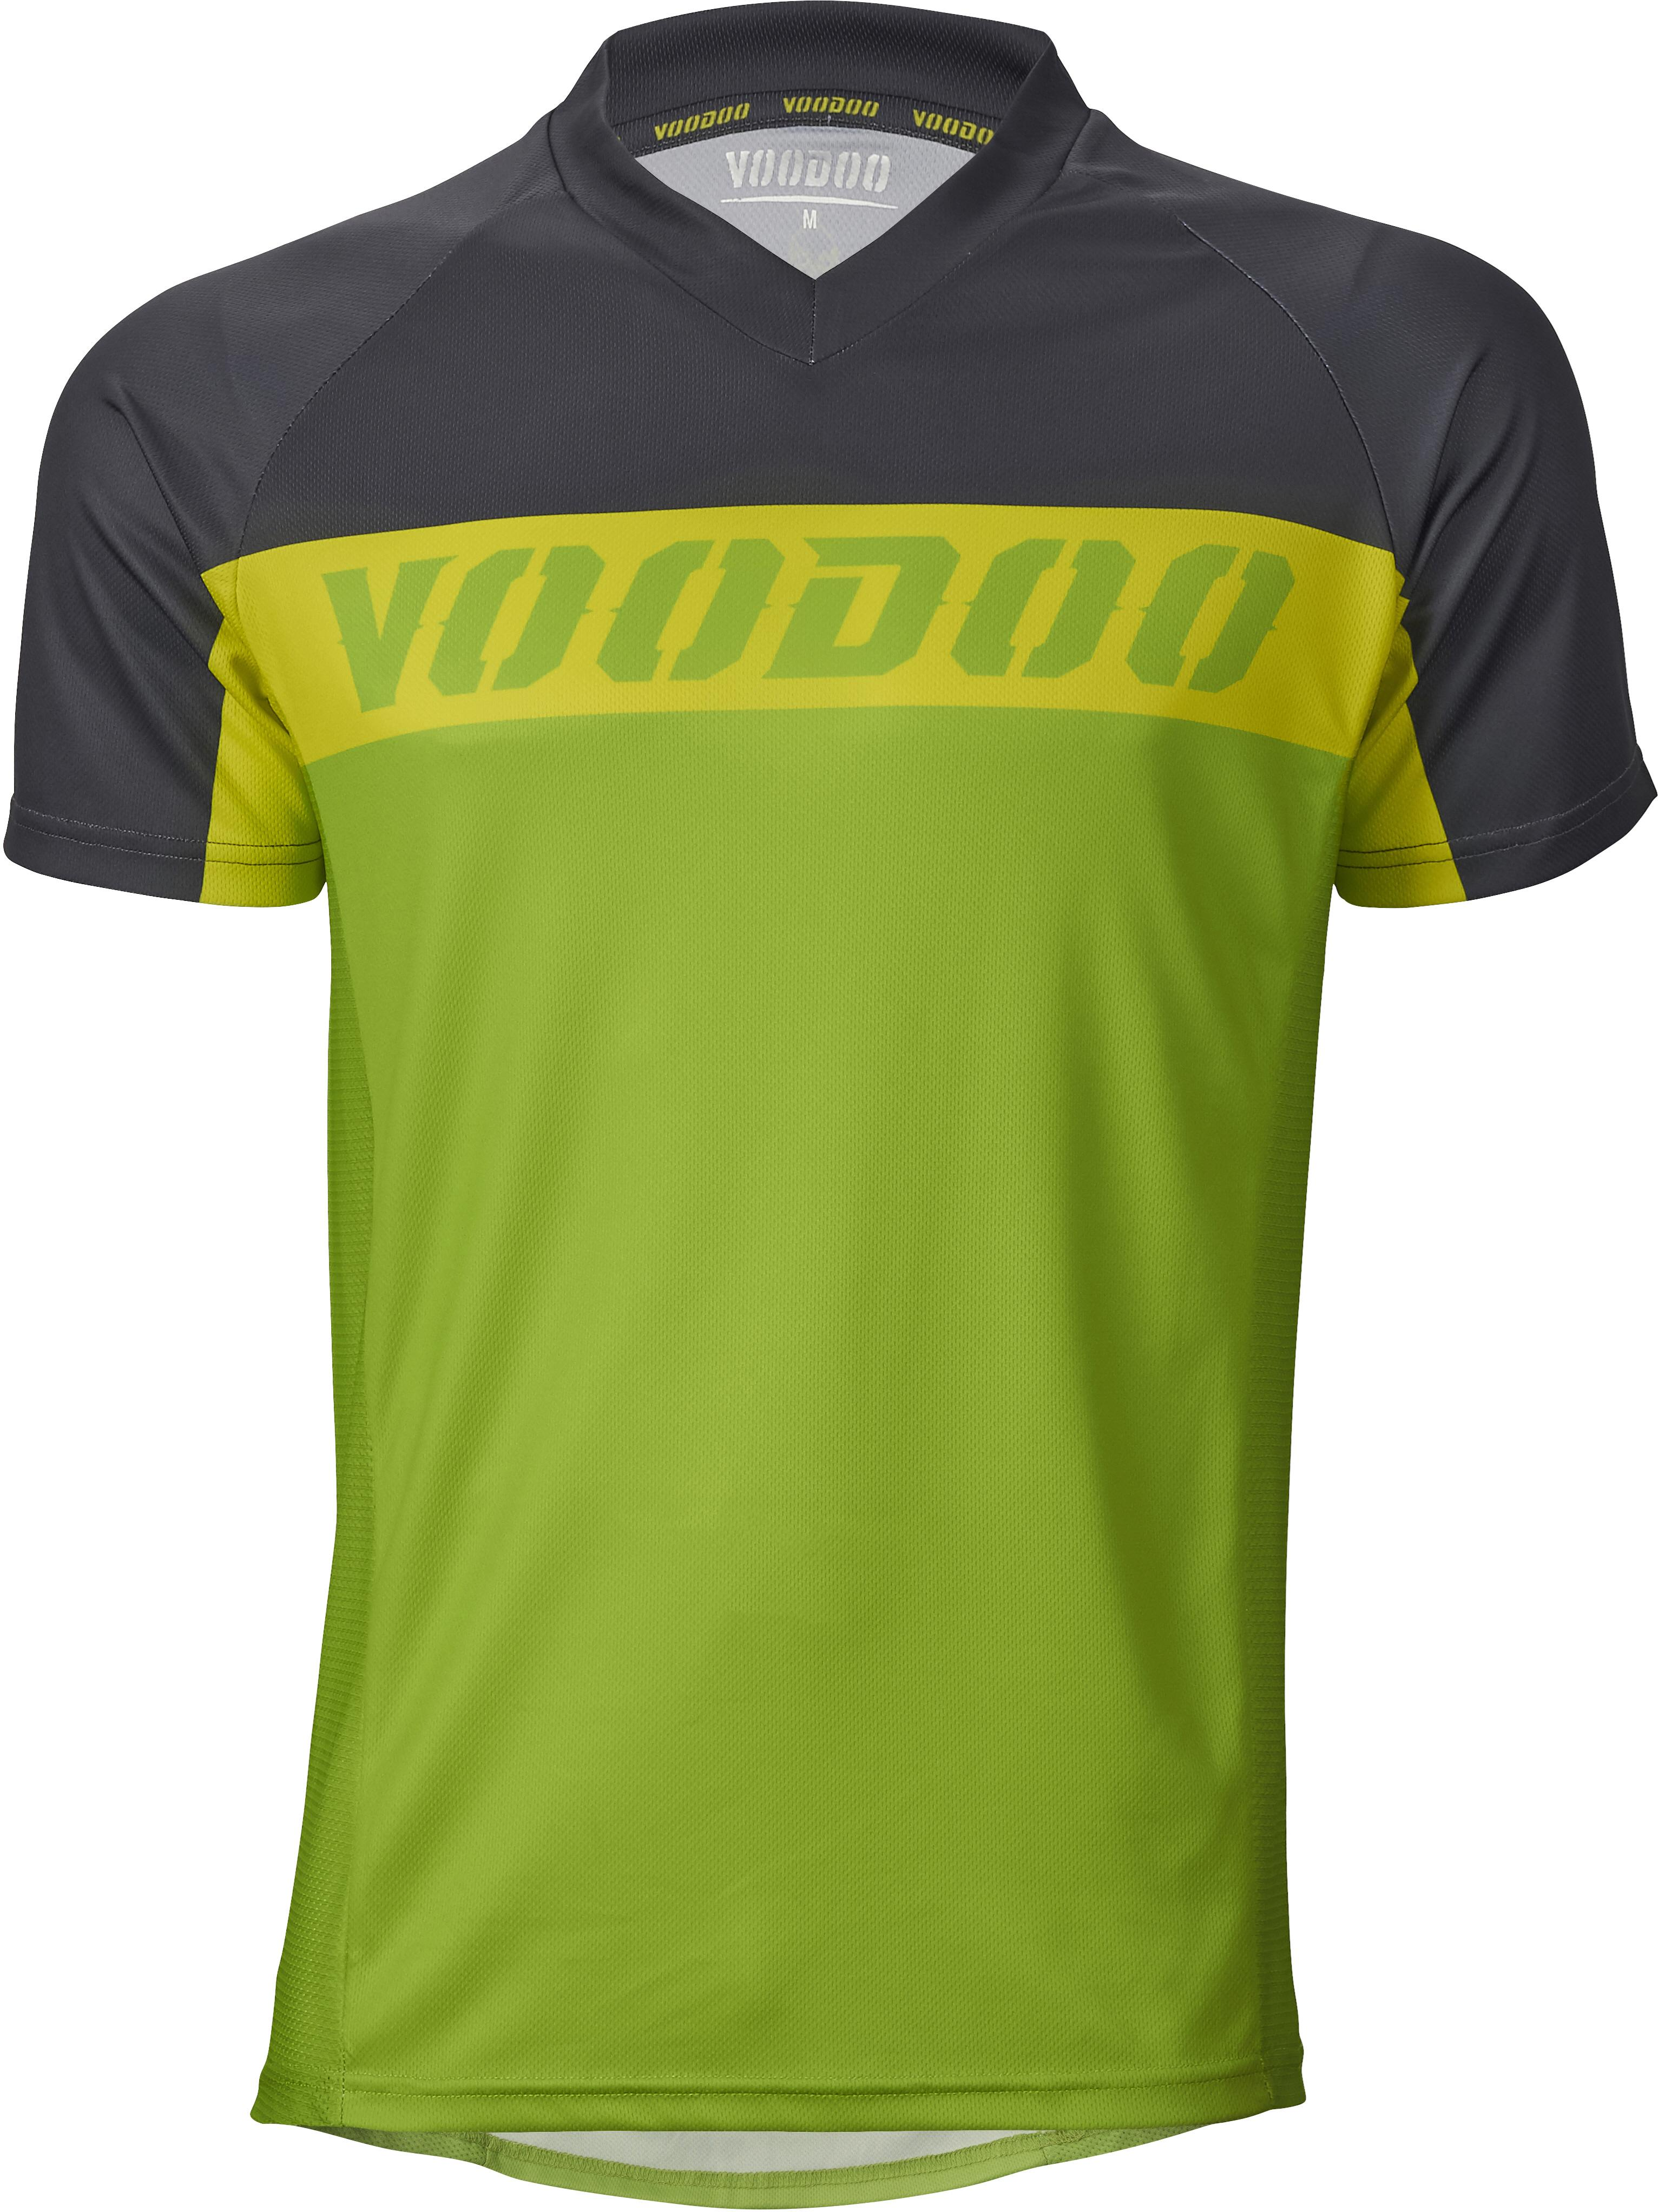 Voodoo Mountain Bike Jersey Short Sleeve Bike Bicycle Cycle Cycling ... fded57920